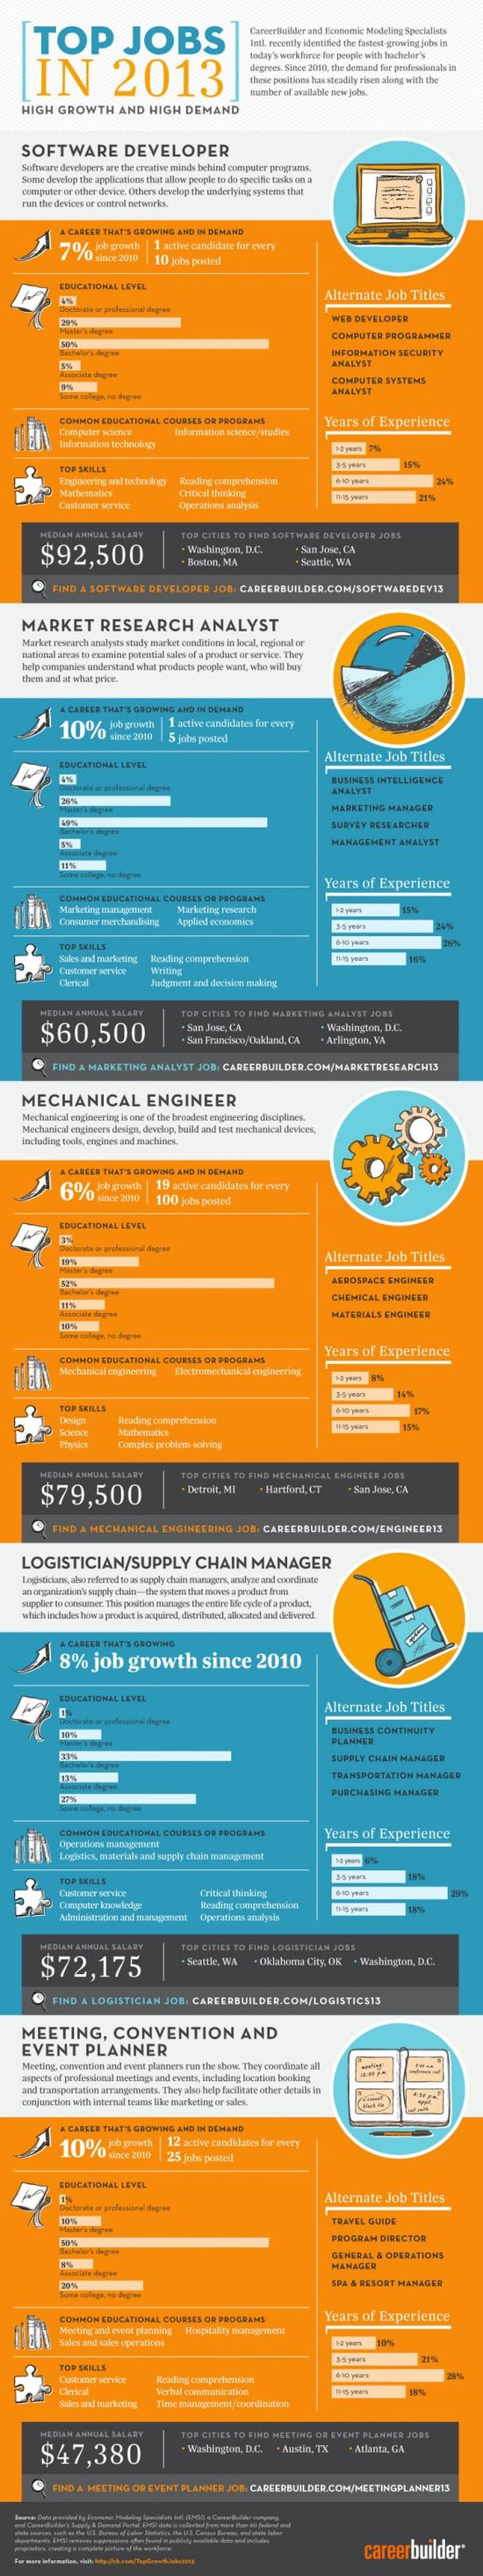 Check out the fastest growing jobs in 2013